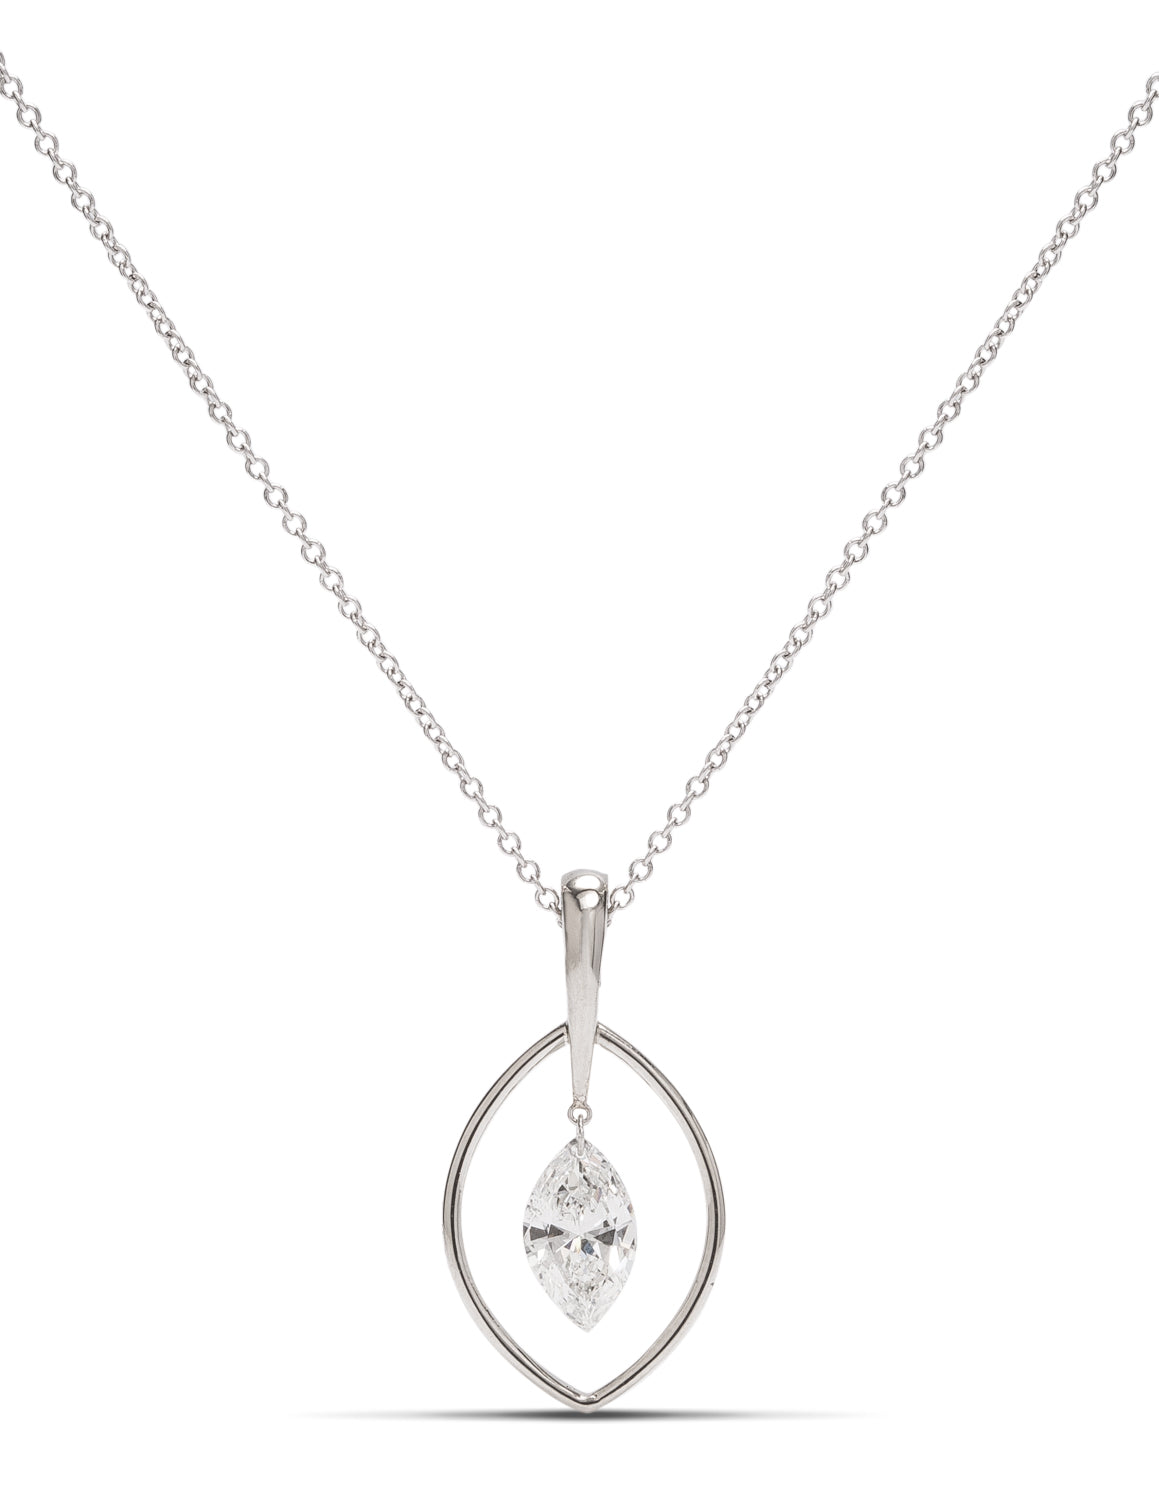 White Gold Dancing Marquis Diamond Pendant - Charles Koll Jewellers